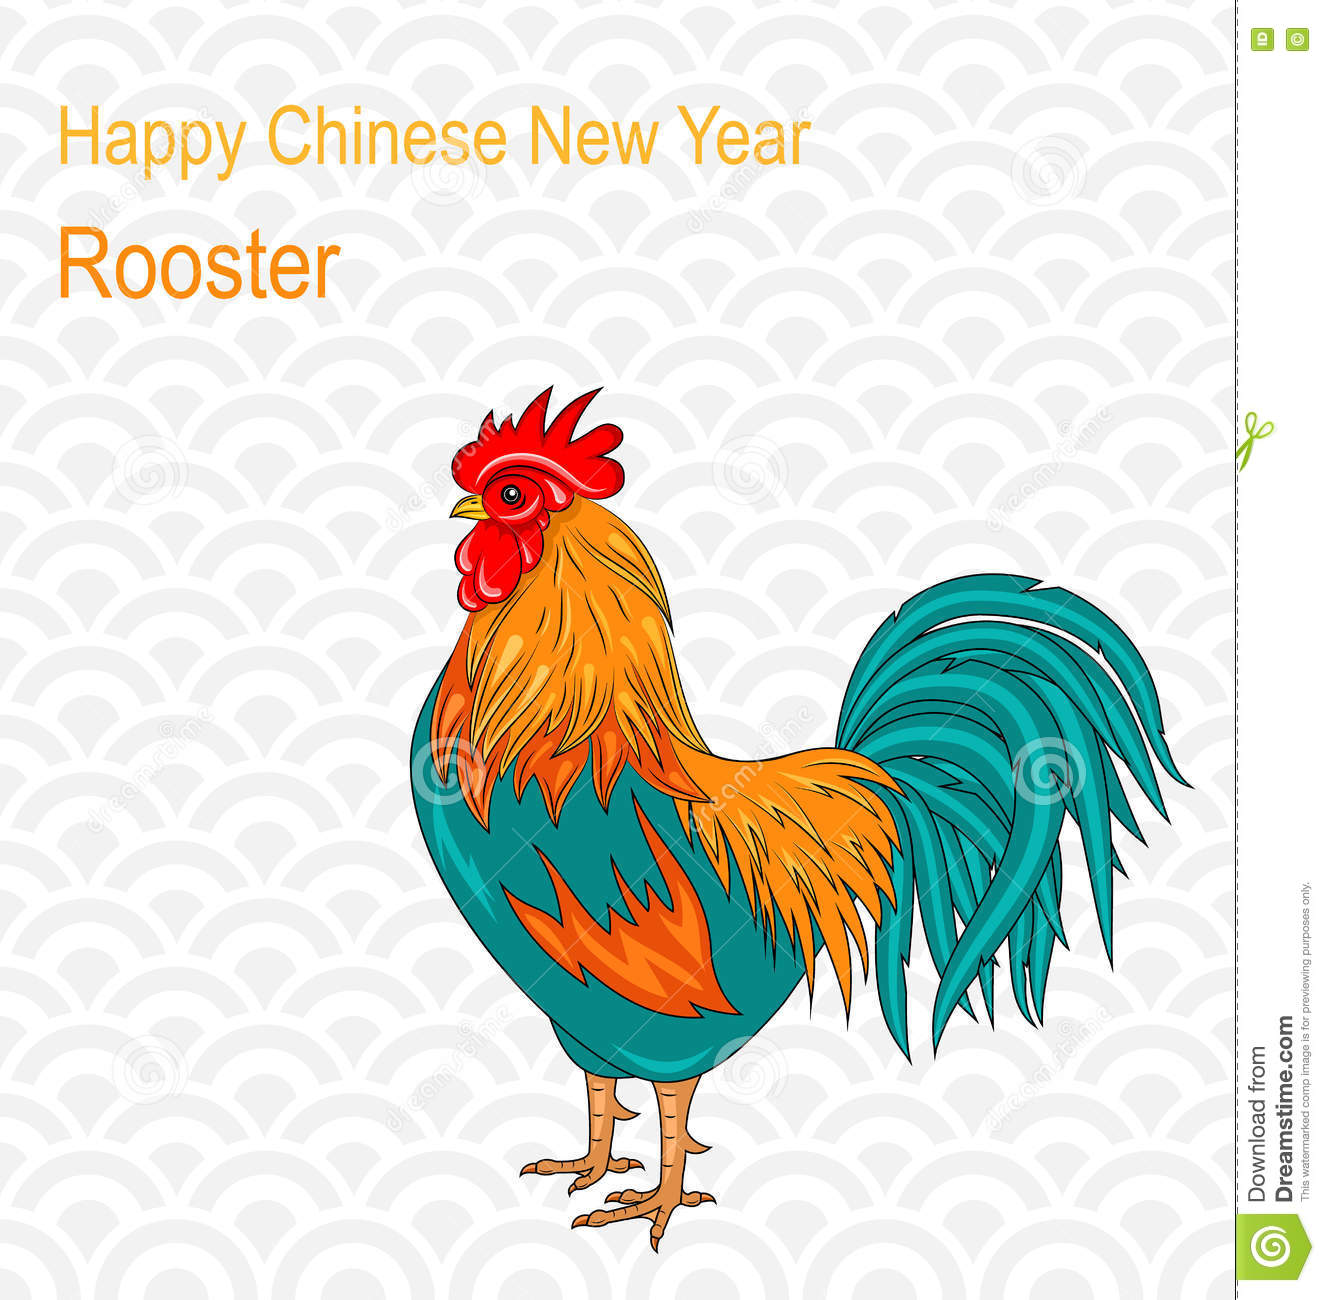 Chinese Calendar Illustration : Postcard with rooster as symbol chinese new year